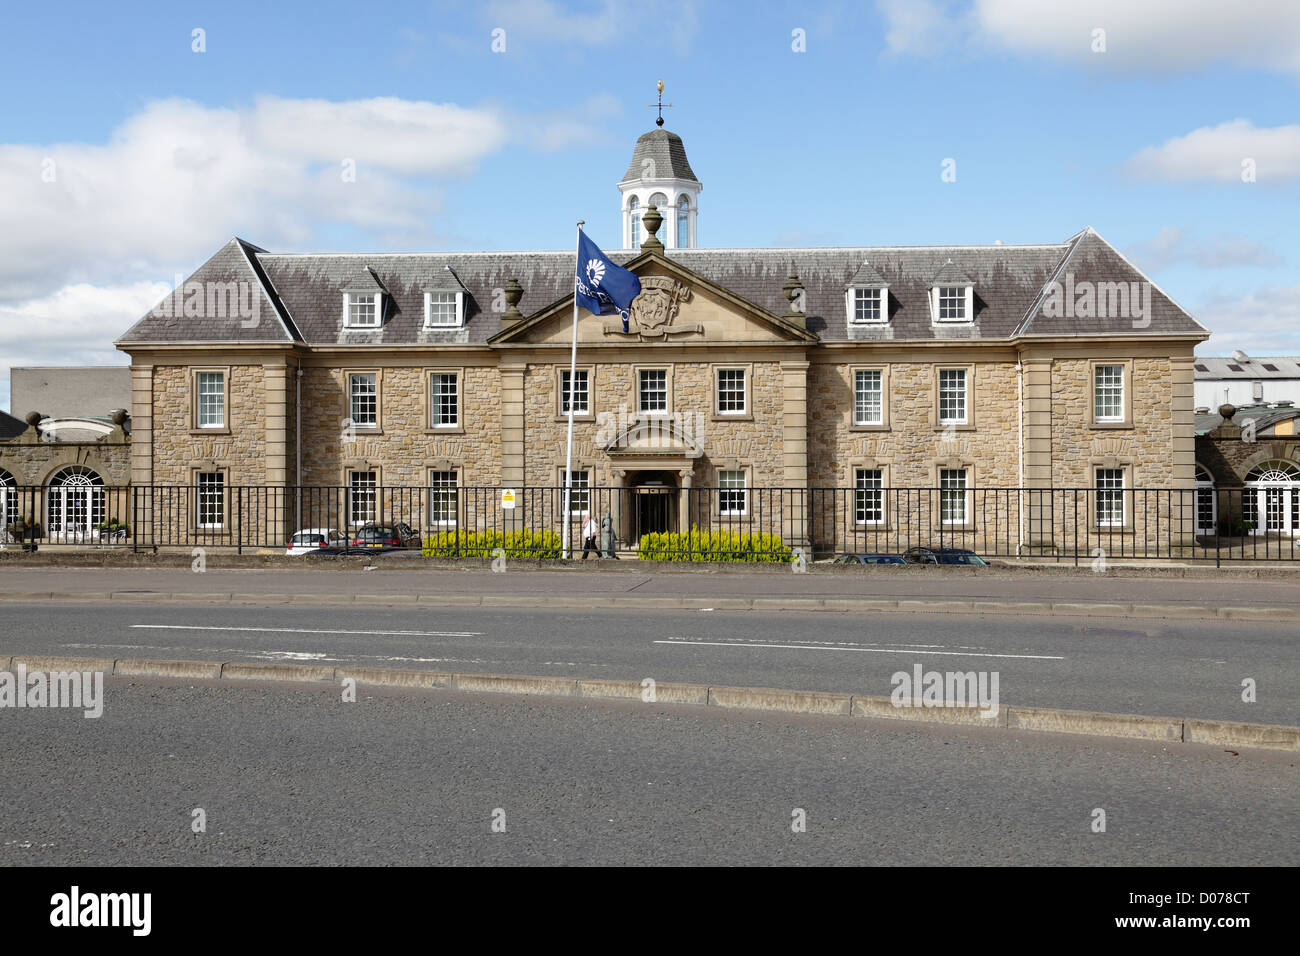 Office building at chivas regal whisky company on renfrew road in office building at chivas regal whisky company on renfrew road in paisley renfrewshire scotland uk sciox Image collections